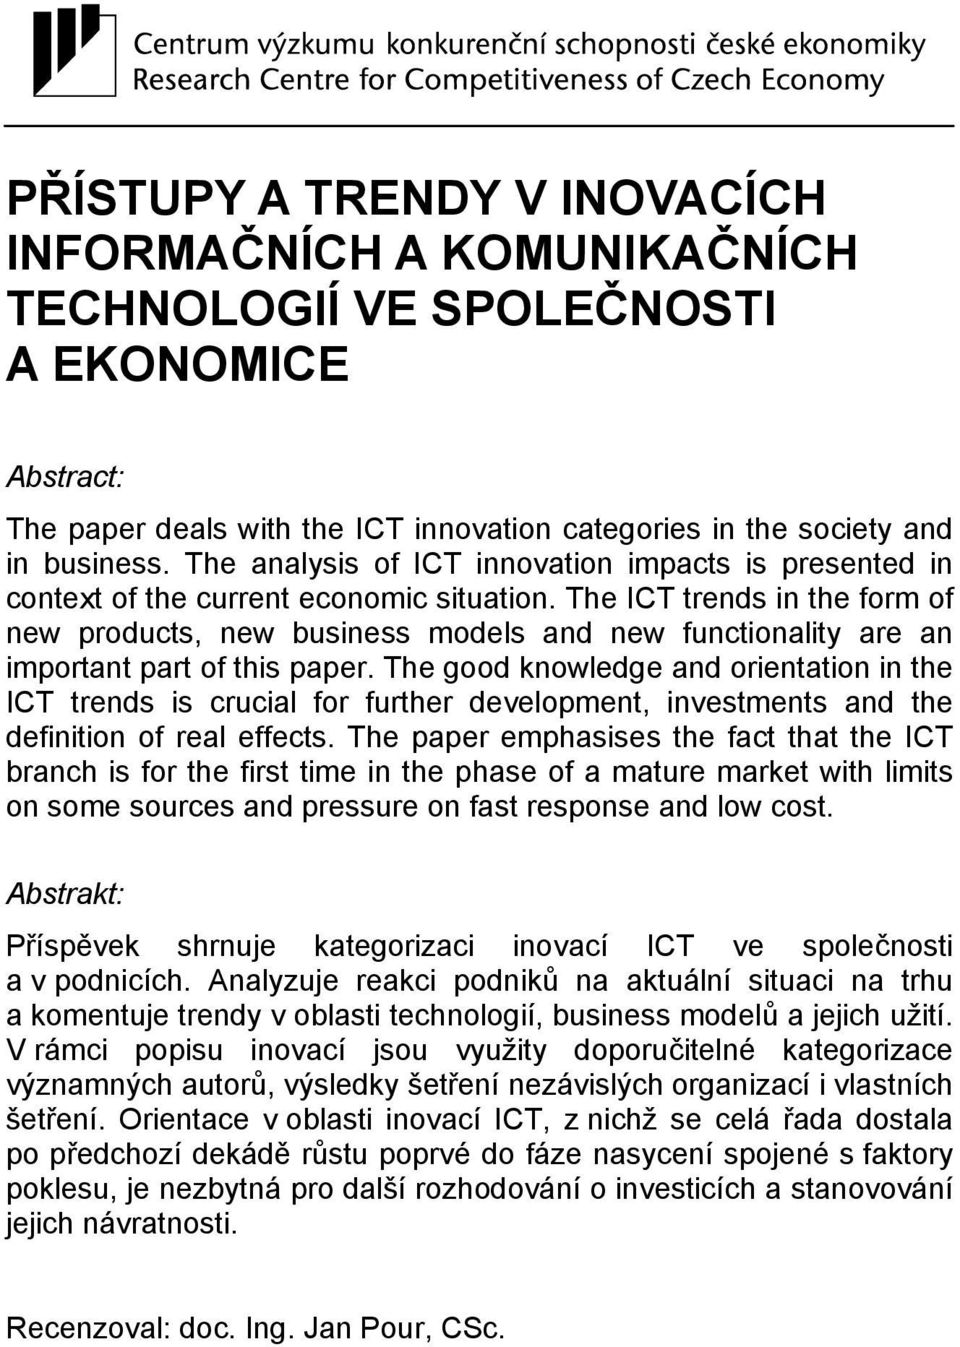 The ICT trends in the form of new products, new business models and new functionality are an important part of this paper.